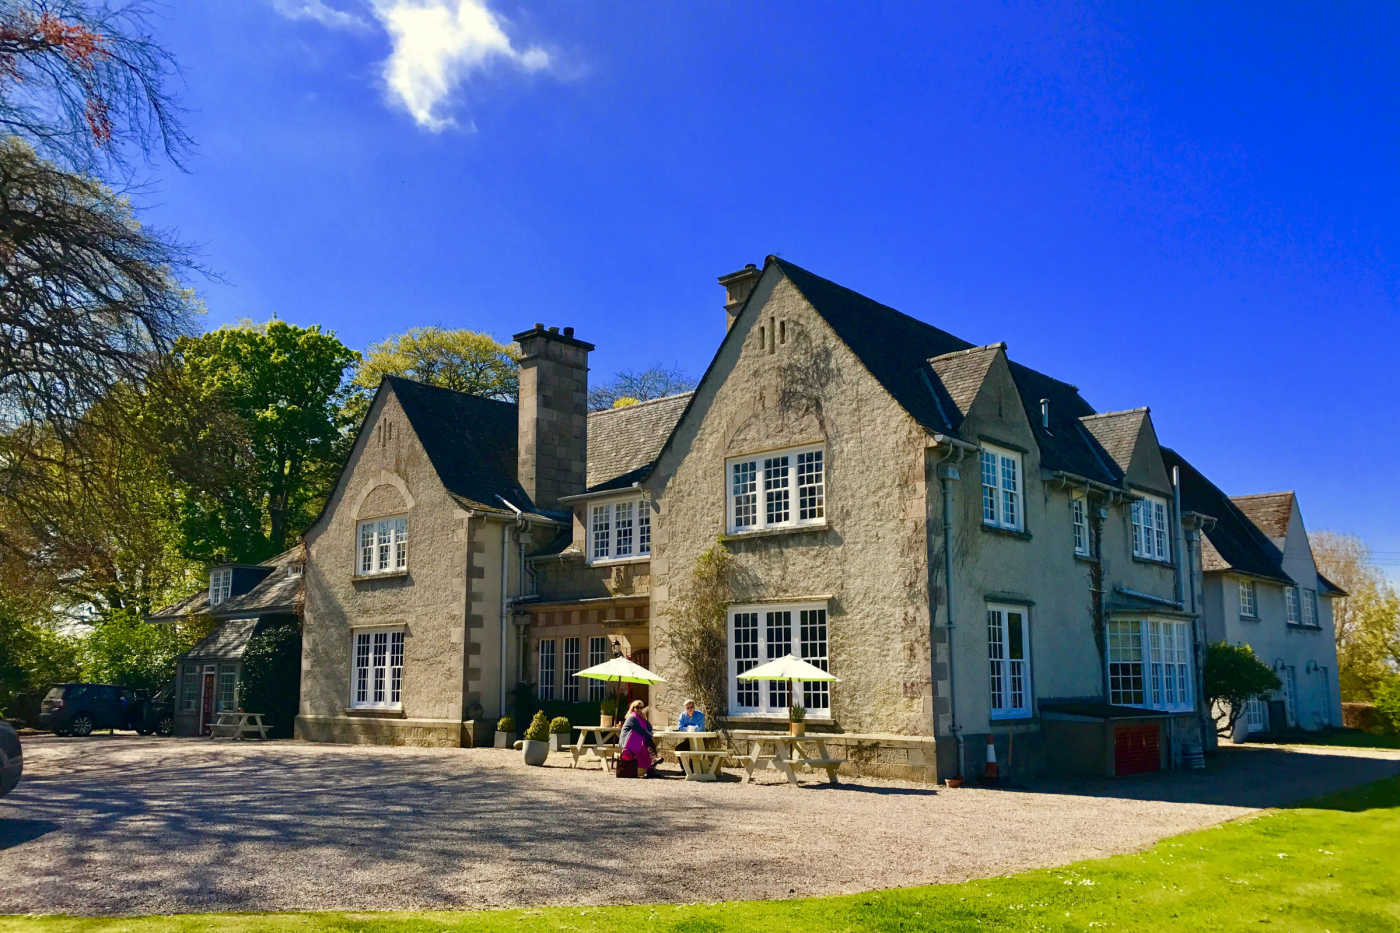 Stay In An Authentic 1812 Stone House A Cozy Family Run Hotel 14 Miles From Forres Town Center And Four 16th Century Brodie Castle